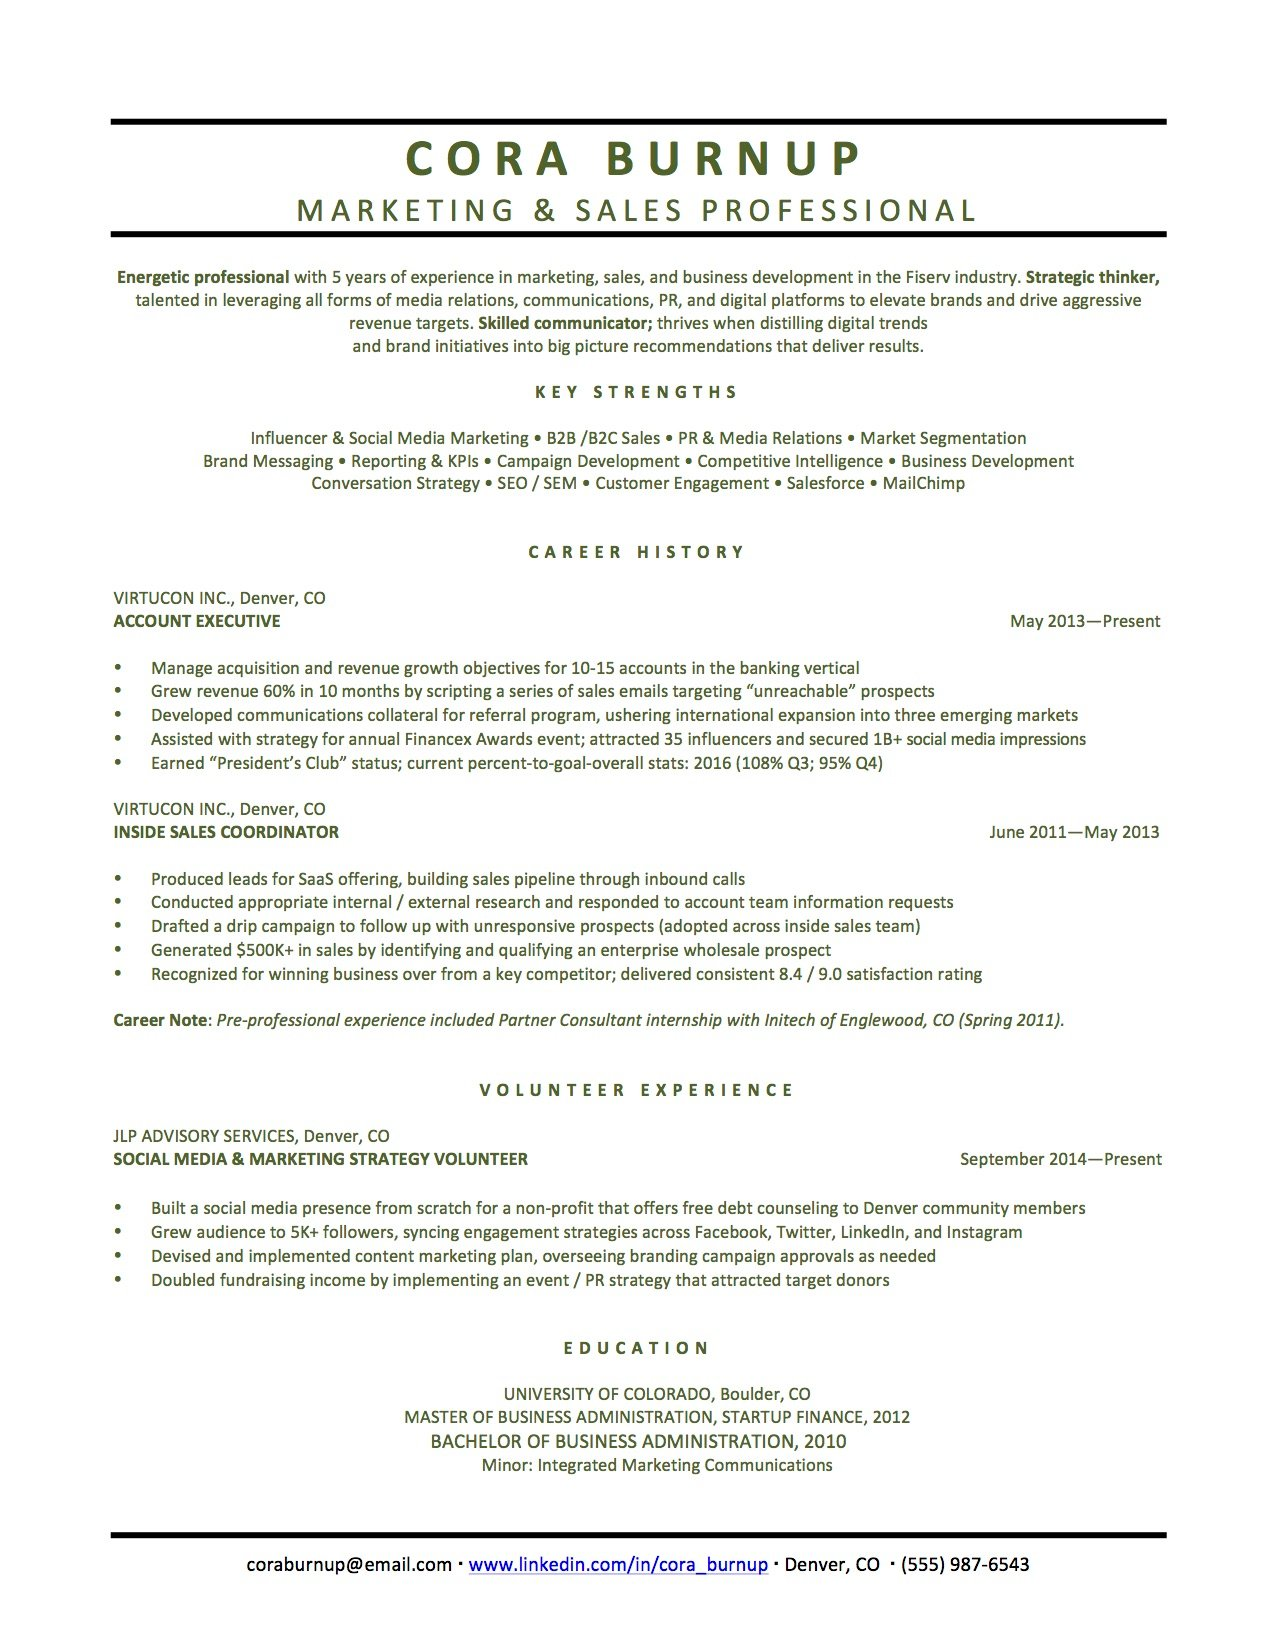 Career Summary Resume Example Resume For A Career Change Sample Distinctive  Documents Hertogenboschalstublieft  Sample Resume Professional Summary